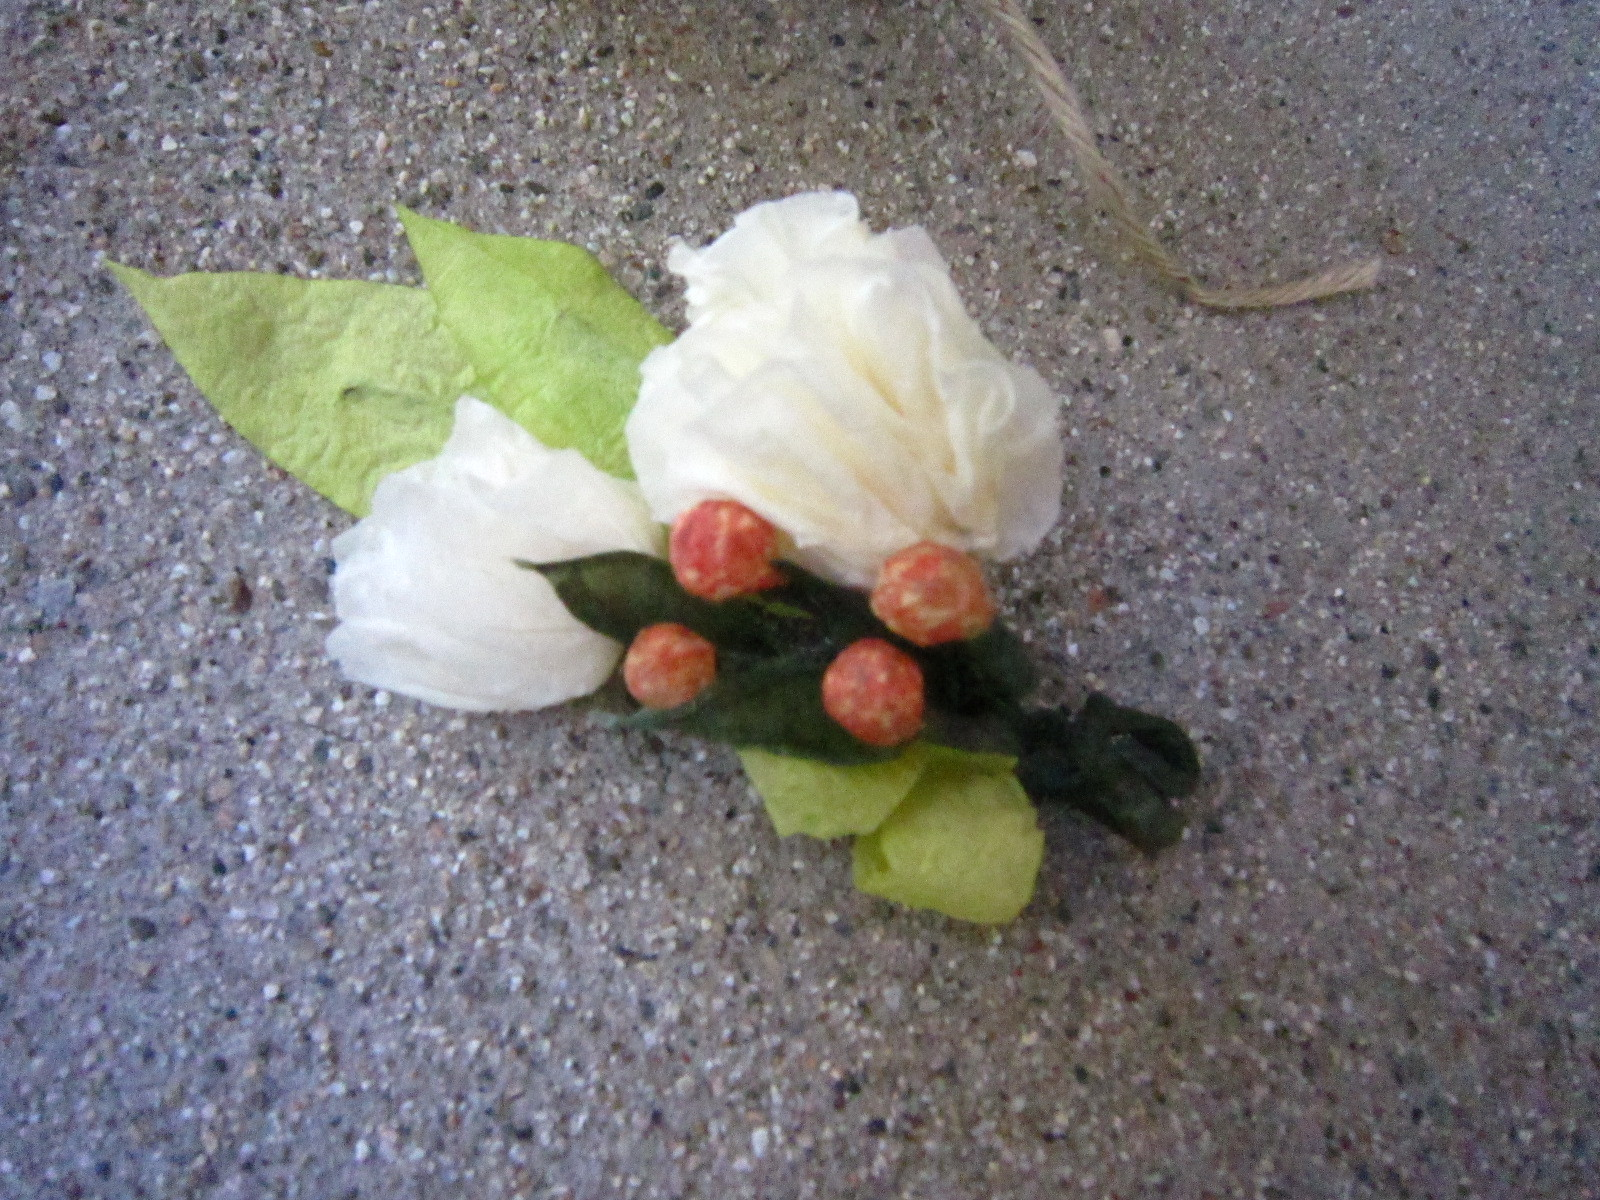 Flowers, Bridal, Groom, DIY, Party, Cream, Peach, Lime, Paper, Grooms, Fake, Men, Artsy, Boutonnier, Flowers & Decor